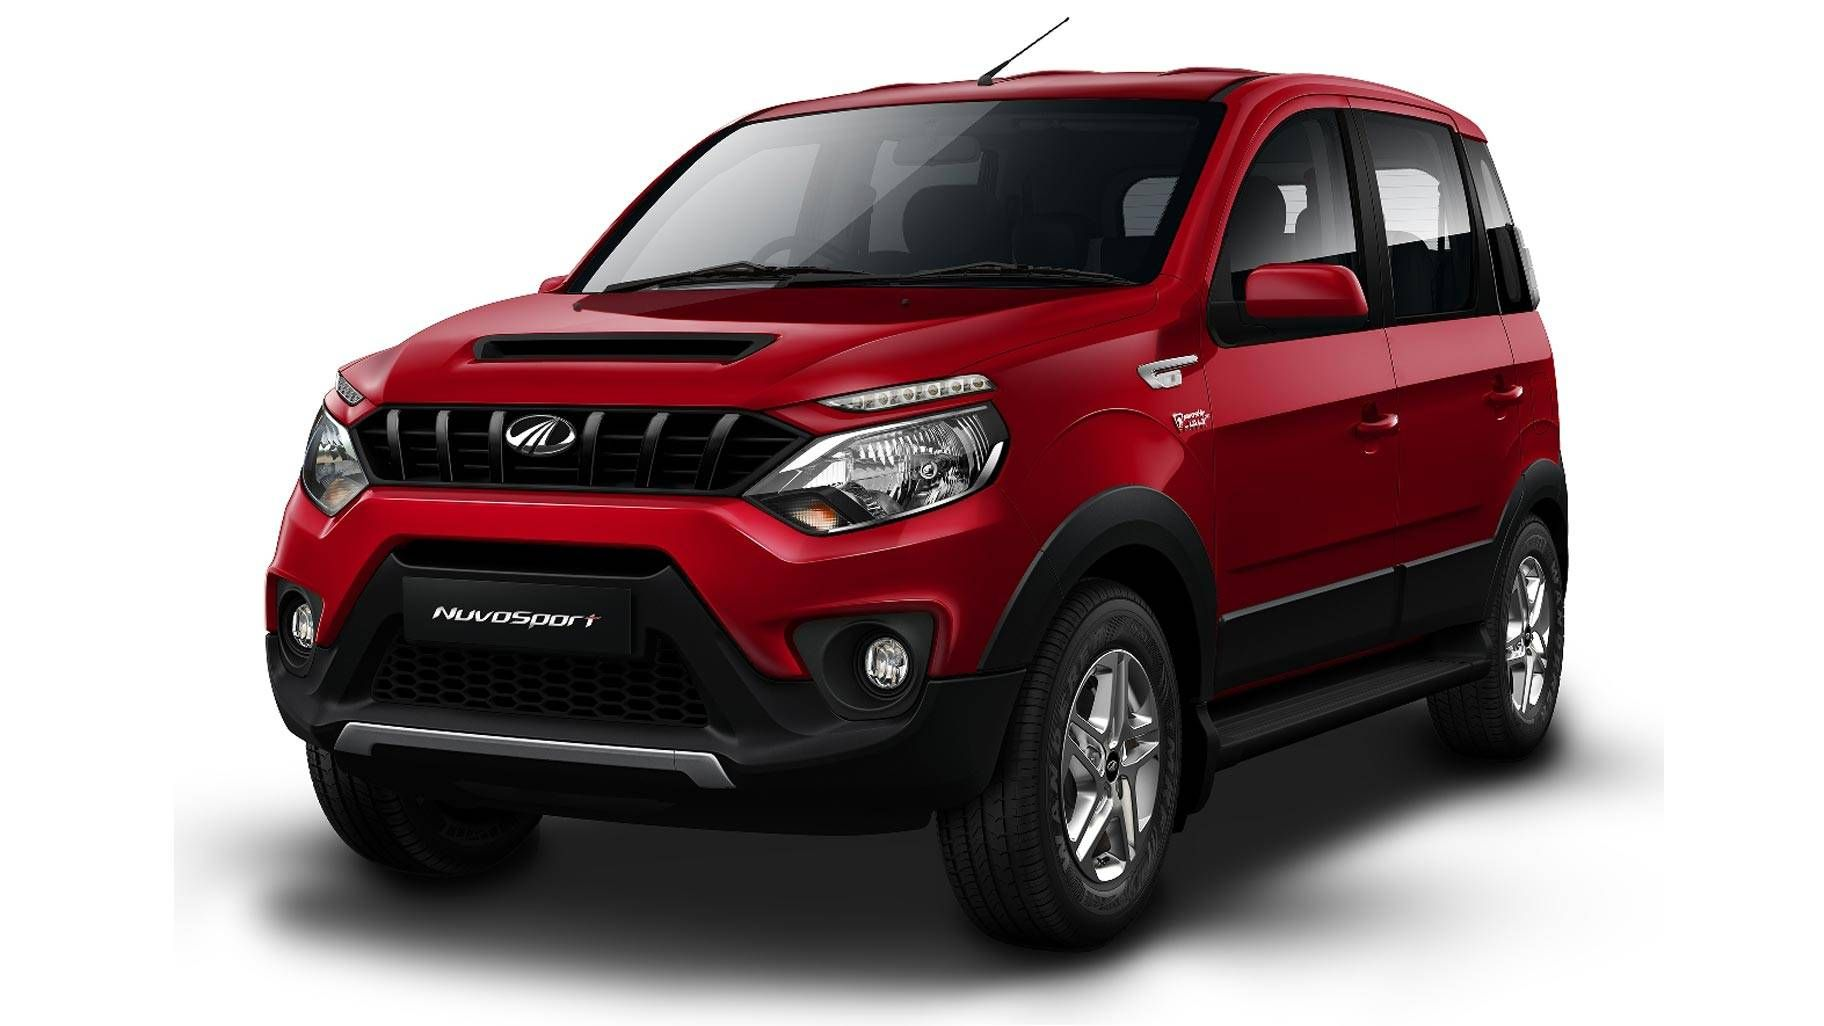 Mahindra launches NuvoSport website In